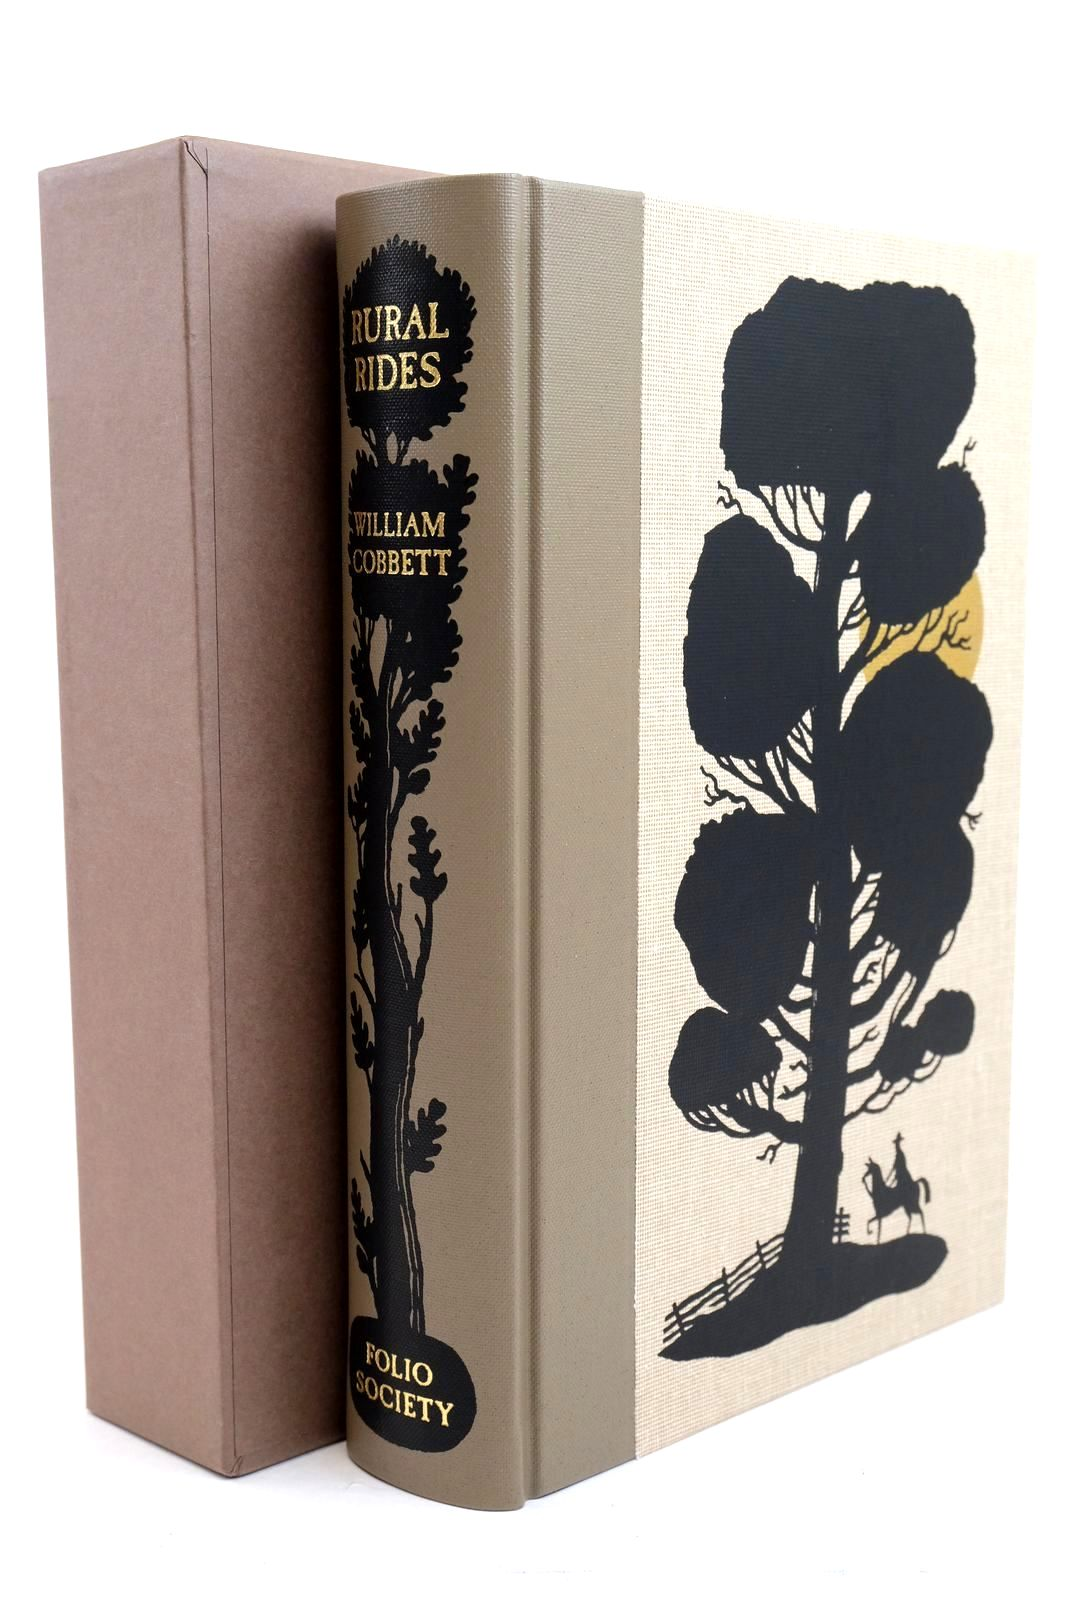 Photo of RURAL RIDES written by Cobbett, William illustrated by McLaren, Joe published by Folio Society (STOCK CODE: 1321027)  for sale by Stella & Rose's Books